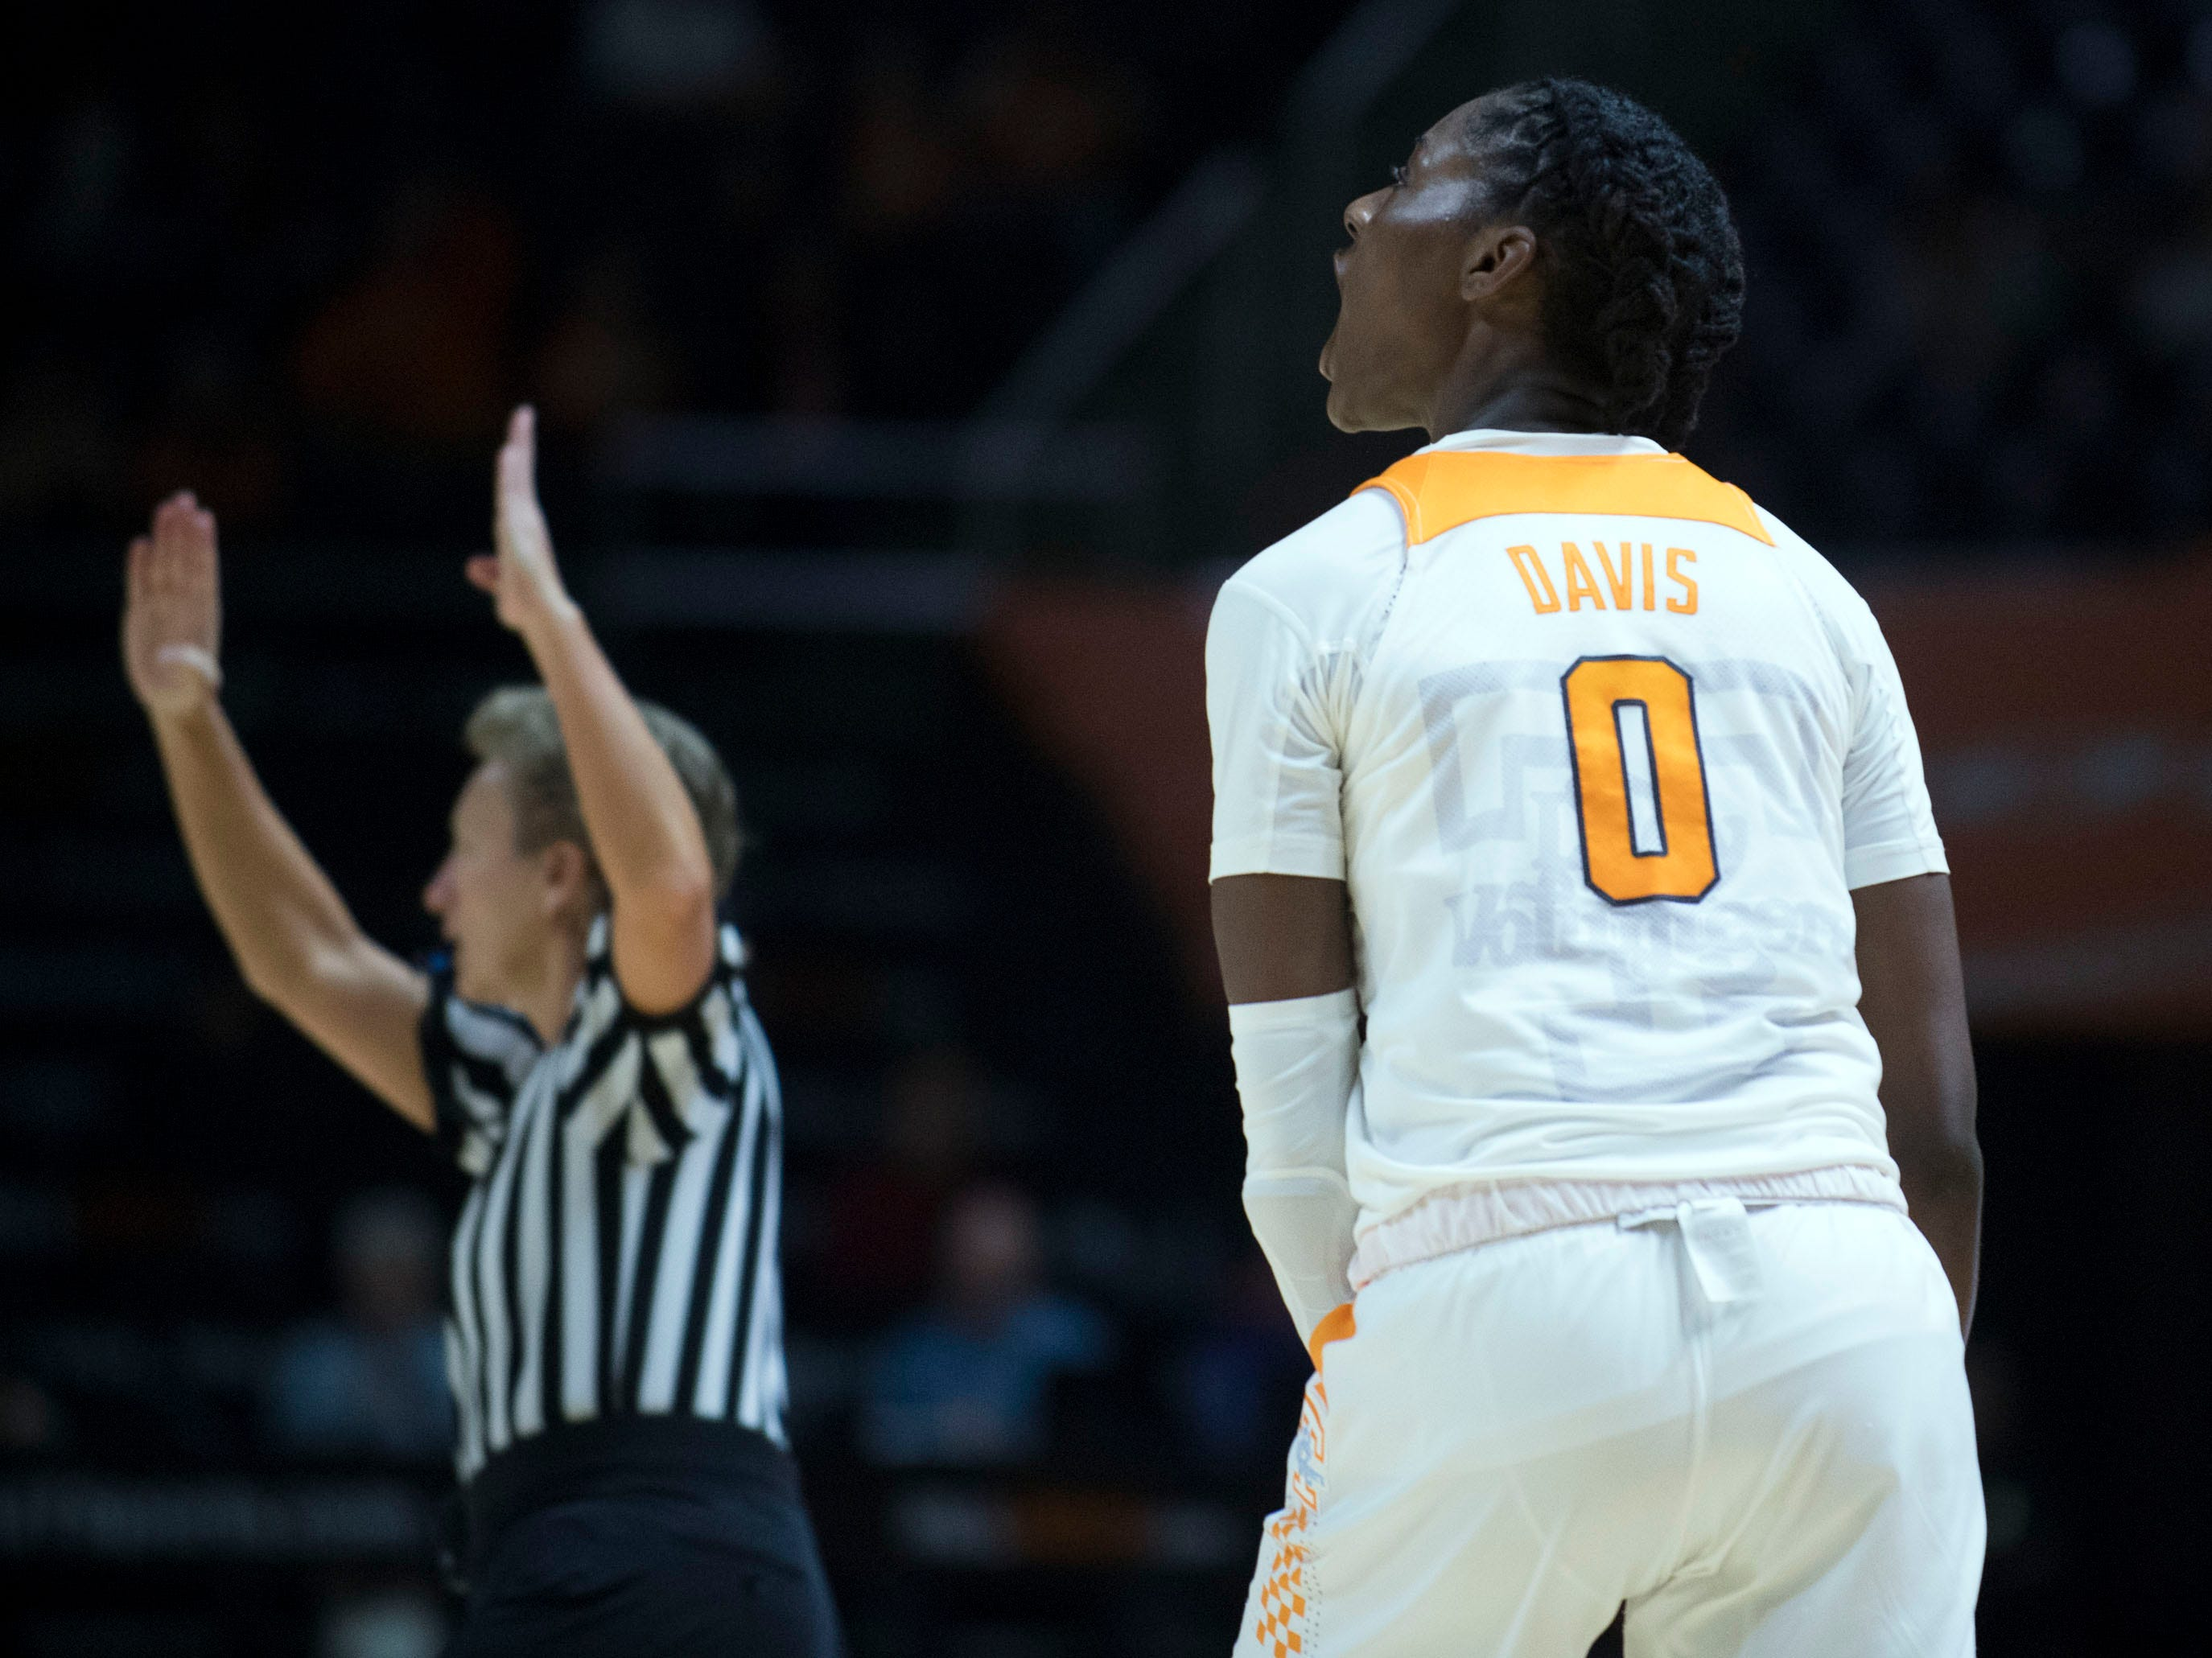 Tennessee's Rennia Davis (0) yells out after her three-point shot put Tennessee ahead of Stetson in the second half of the game at Thompson-Boling Arena on Wednesday, December 5, 2018.